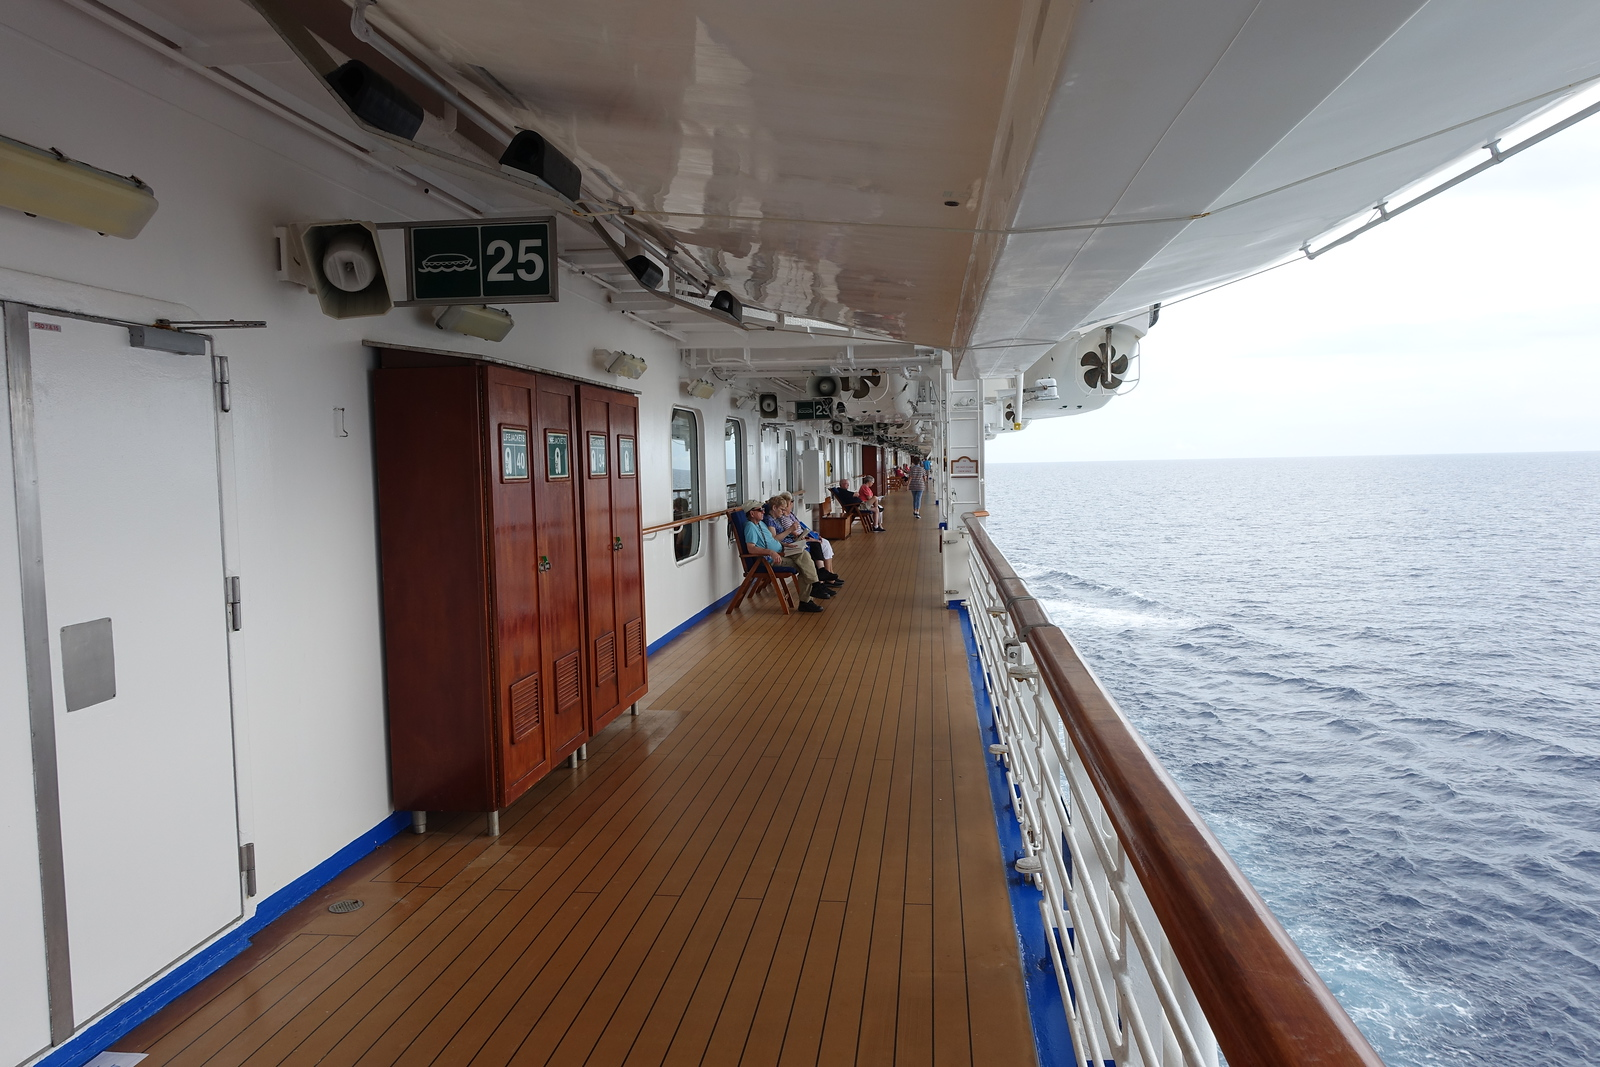 Princess Panama Cruise – Deck 7 Walking Track